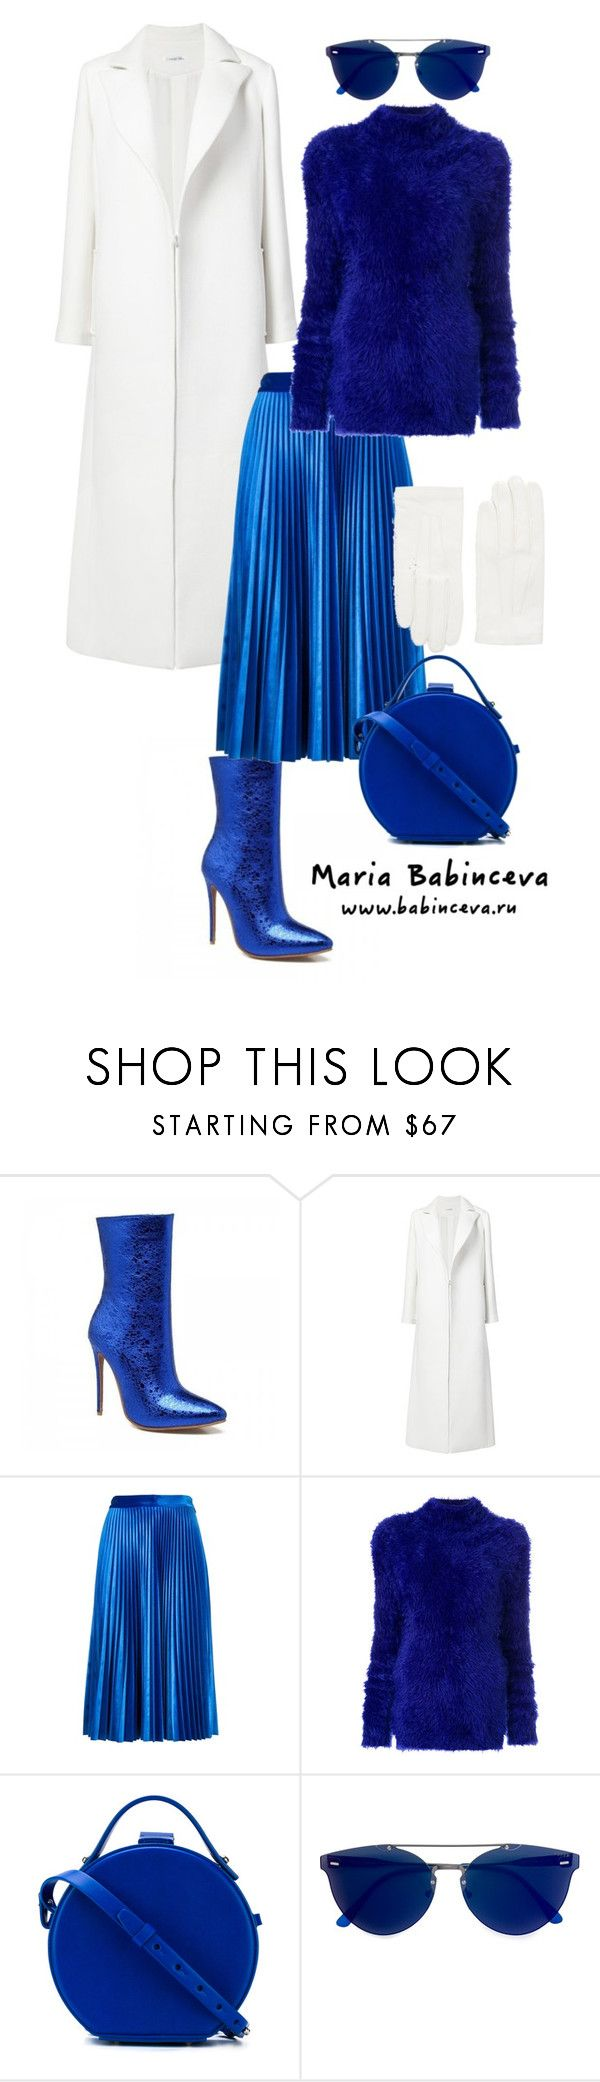 """Без названия #946"" by mariaalex-stylist ❤ liked on Polyvore featuring Oscar de la Renta, MSGM, Marni, Nico Giani, RetroSuperFuture and RED Valentino"